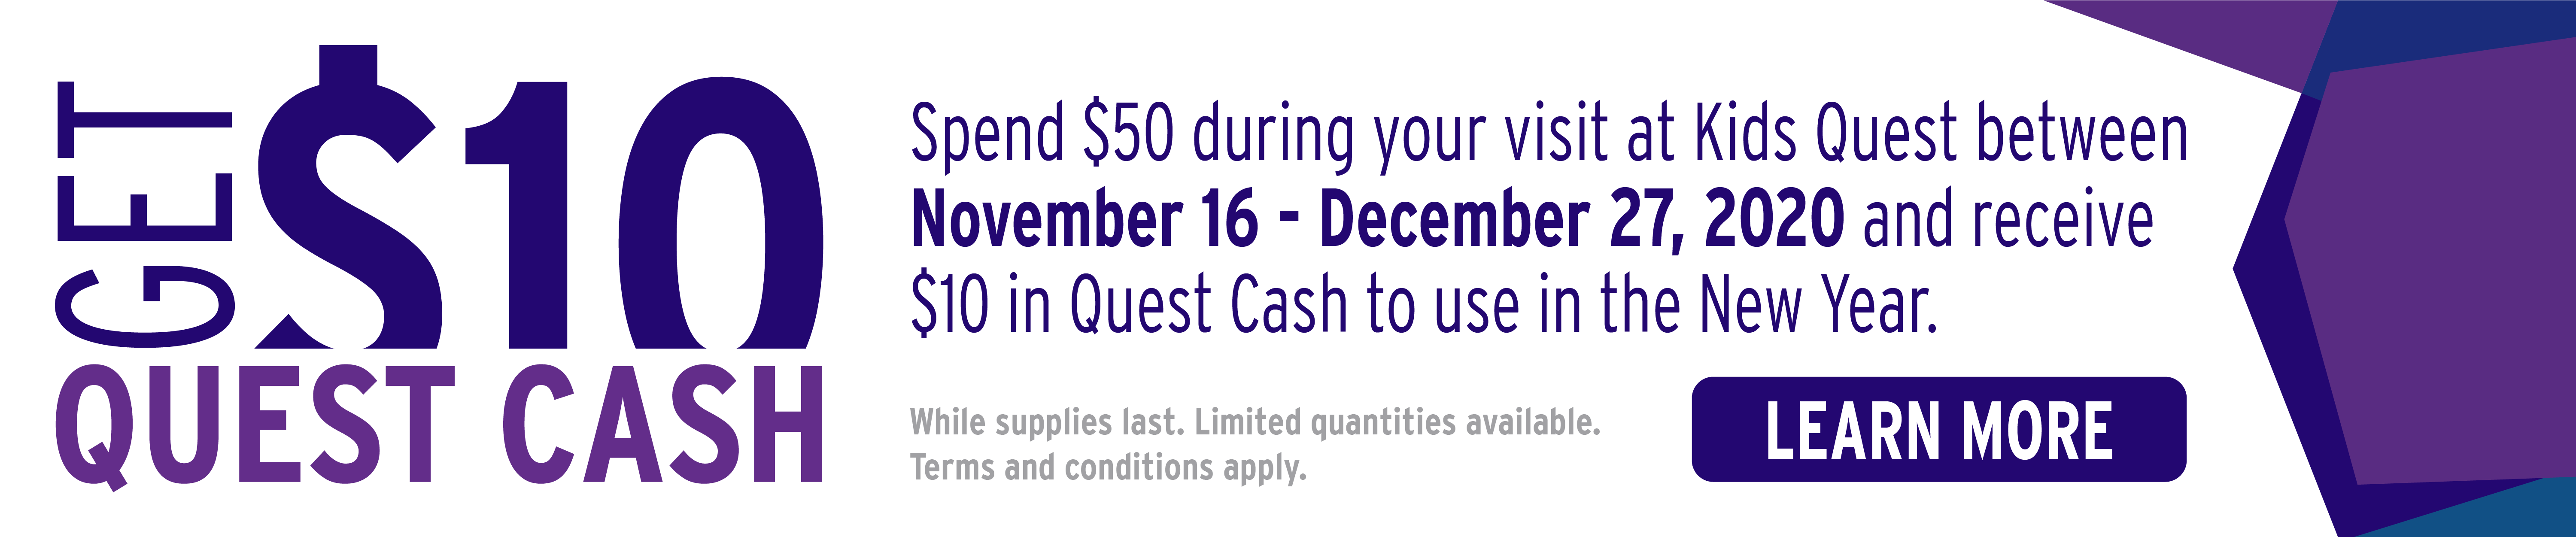 Quest Cash at Kids Quest